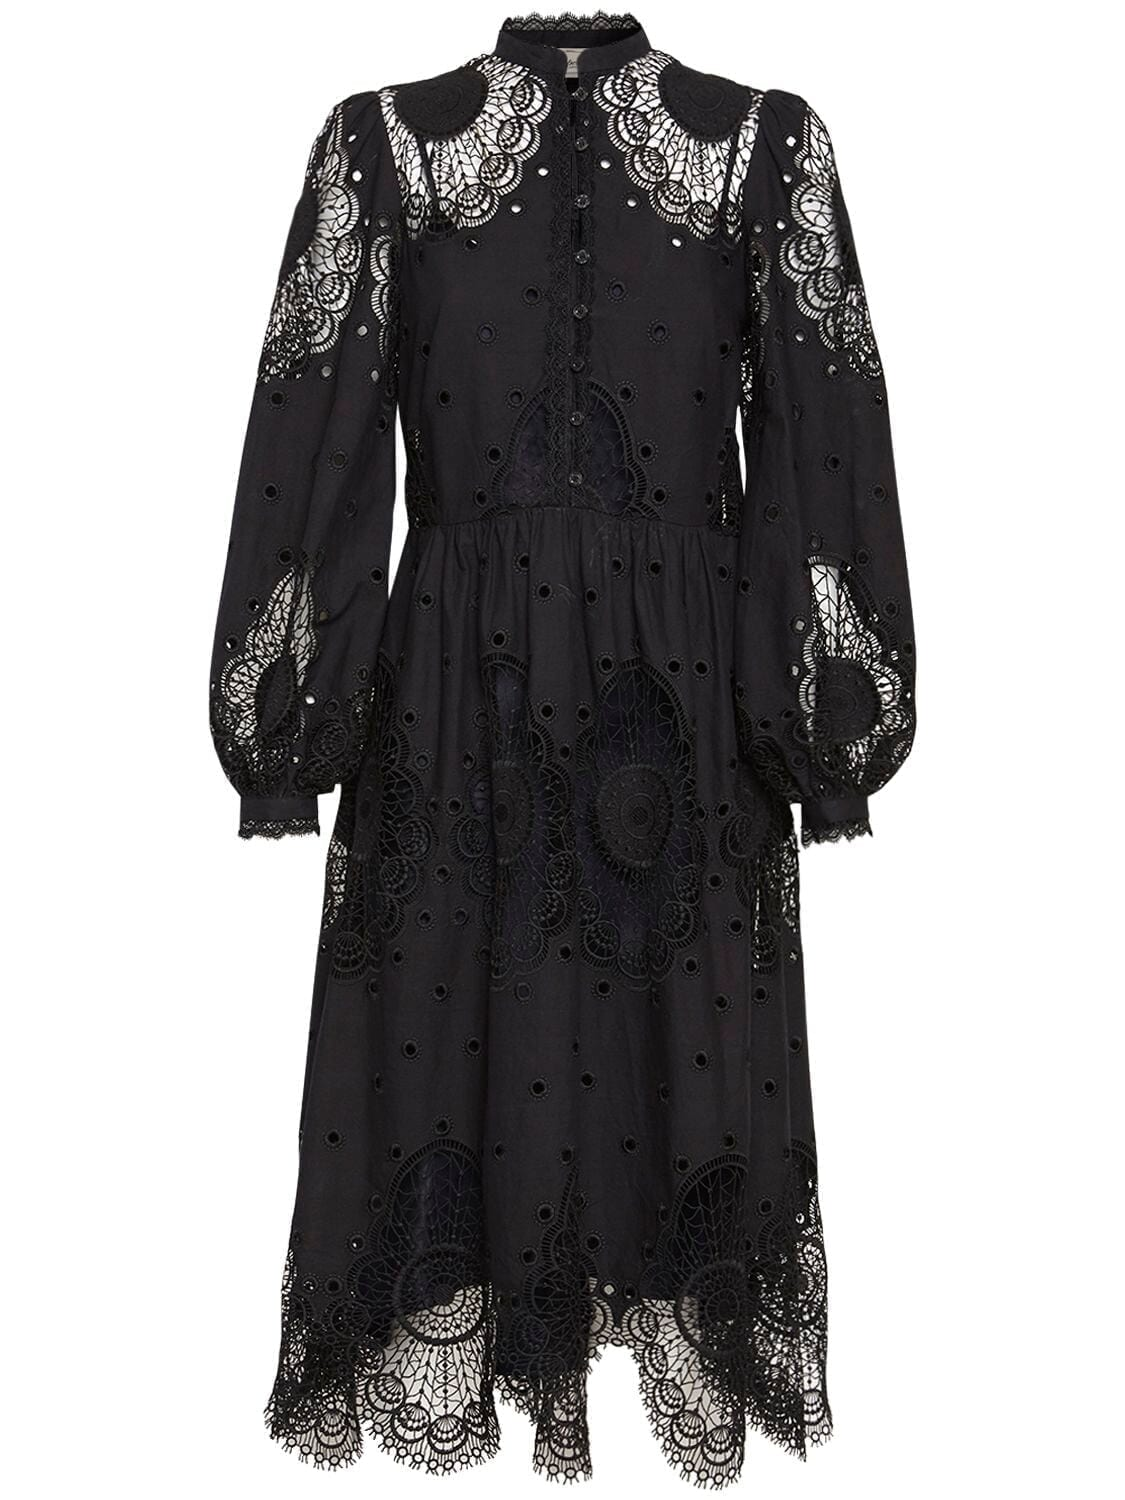 TEMPERLEY LONDON Cotton Blend Lace Midi Dress